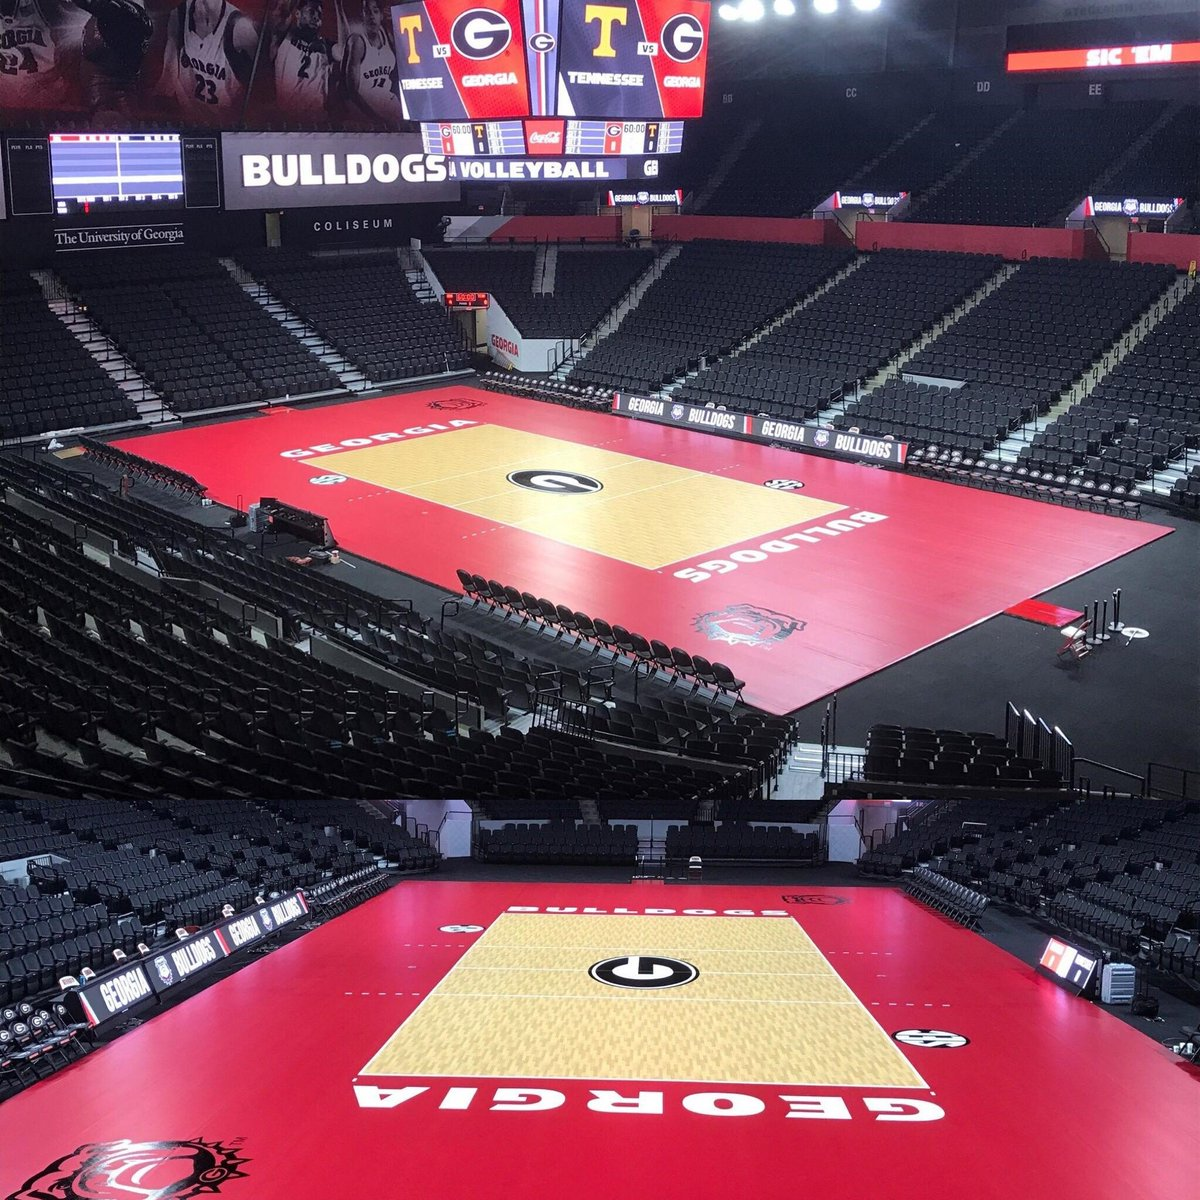 Have you seen the new @universityofga women's volleyball court? Check out the stunning Taraflex court here! #GoBulldogs #SSE #UGA https://t.co/d7CQMZnK6e